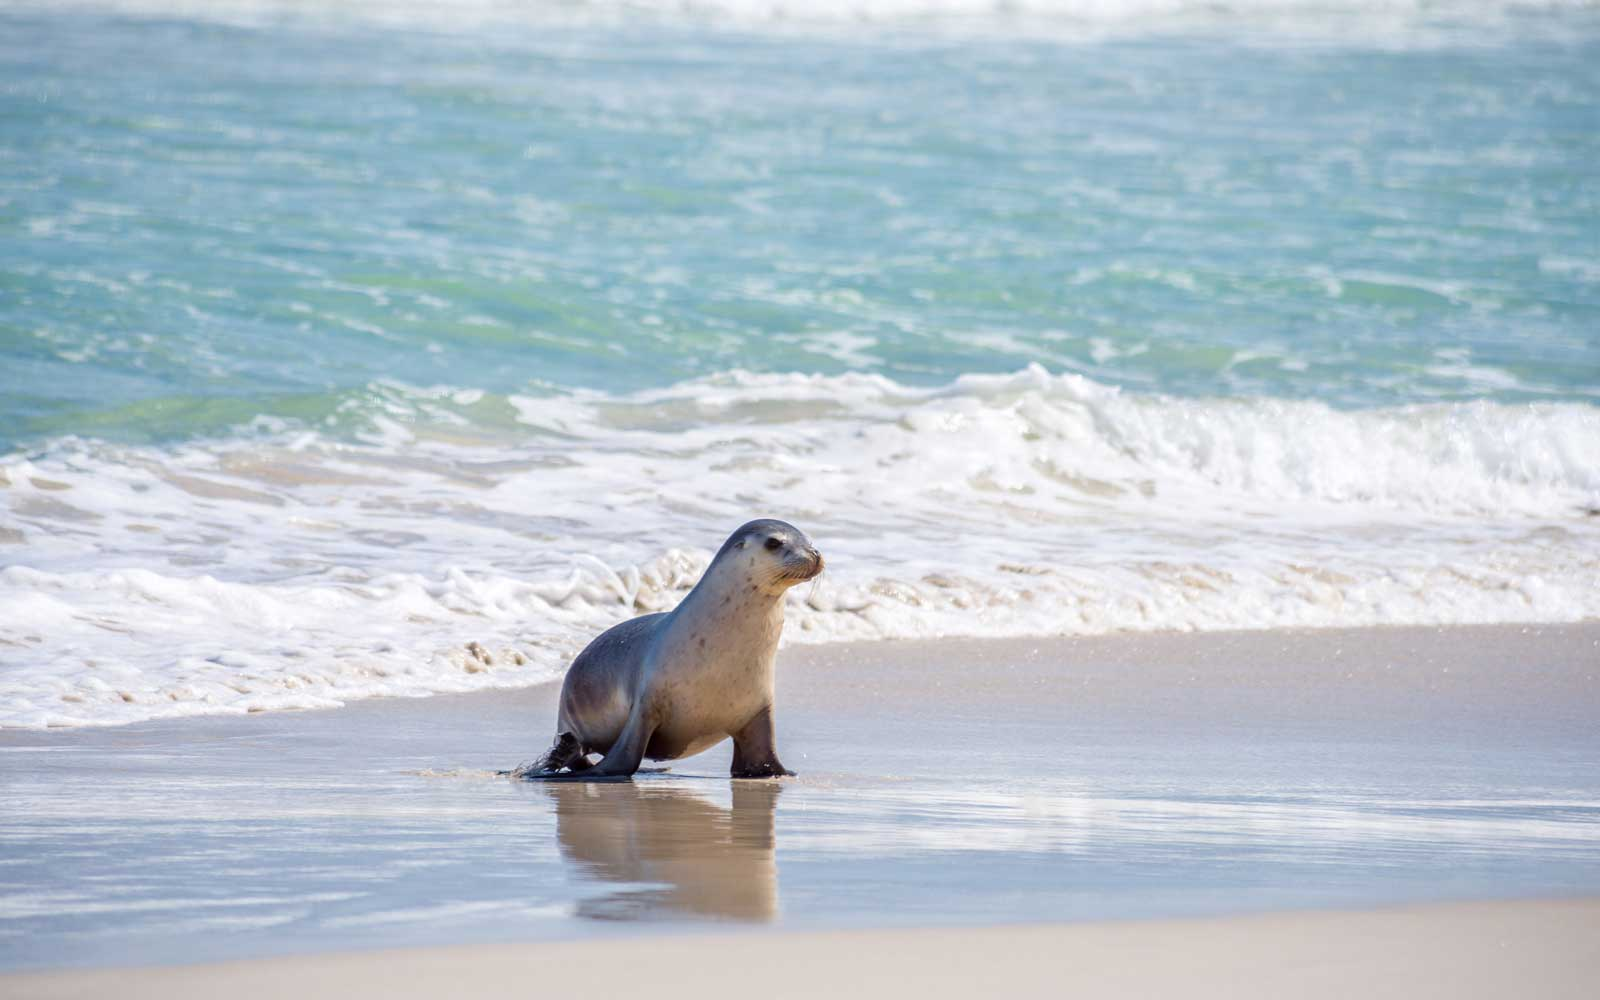 Sea lion, Seal Bay Conservation Park, Kangaroo Island, SA, Australia